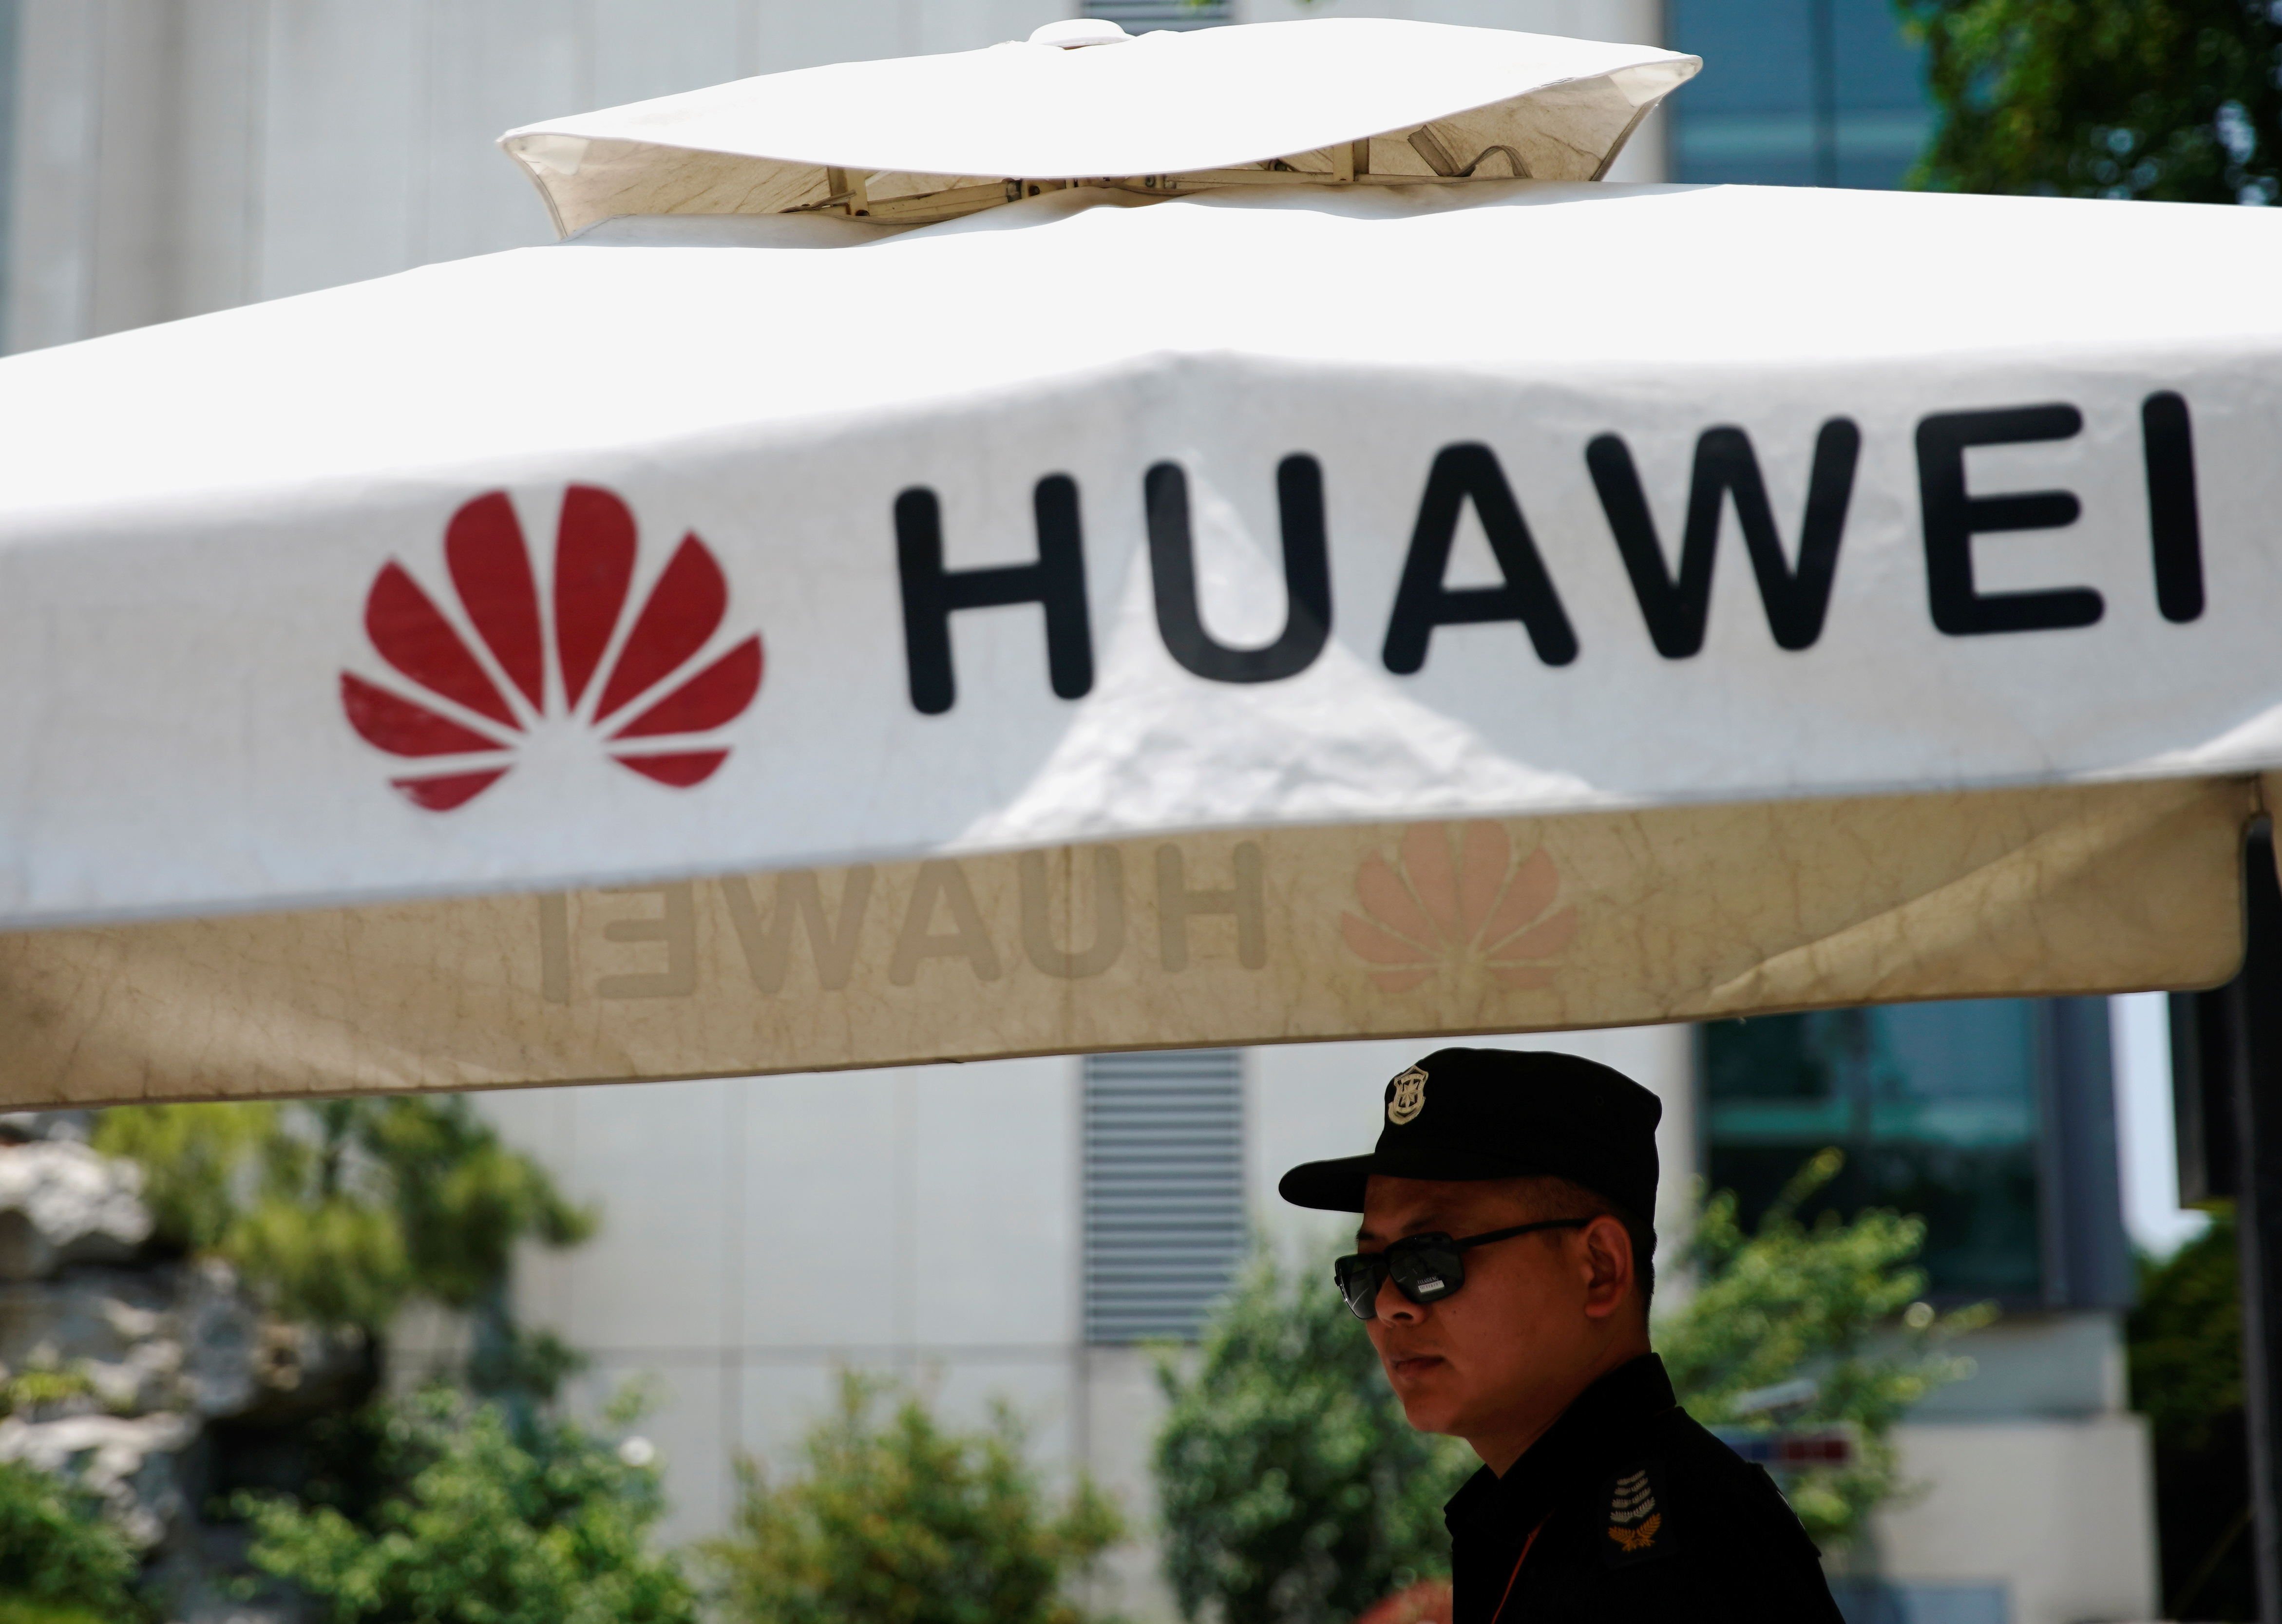 A Huawei logo is seen at the firm's research center in Shanghai. The Chinese telecoms equipment giant is likely to step up development of own technologies in the wake of US sanctions. Photo: Reuters